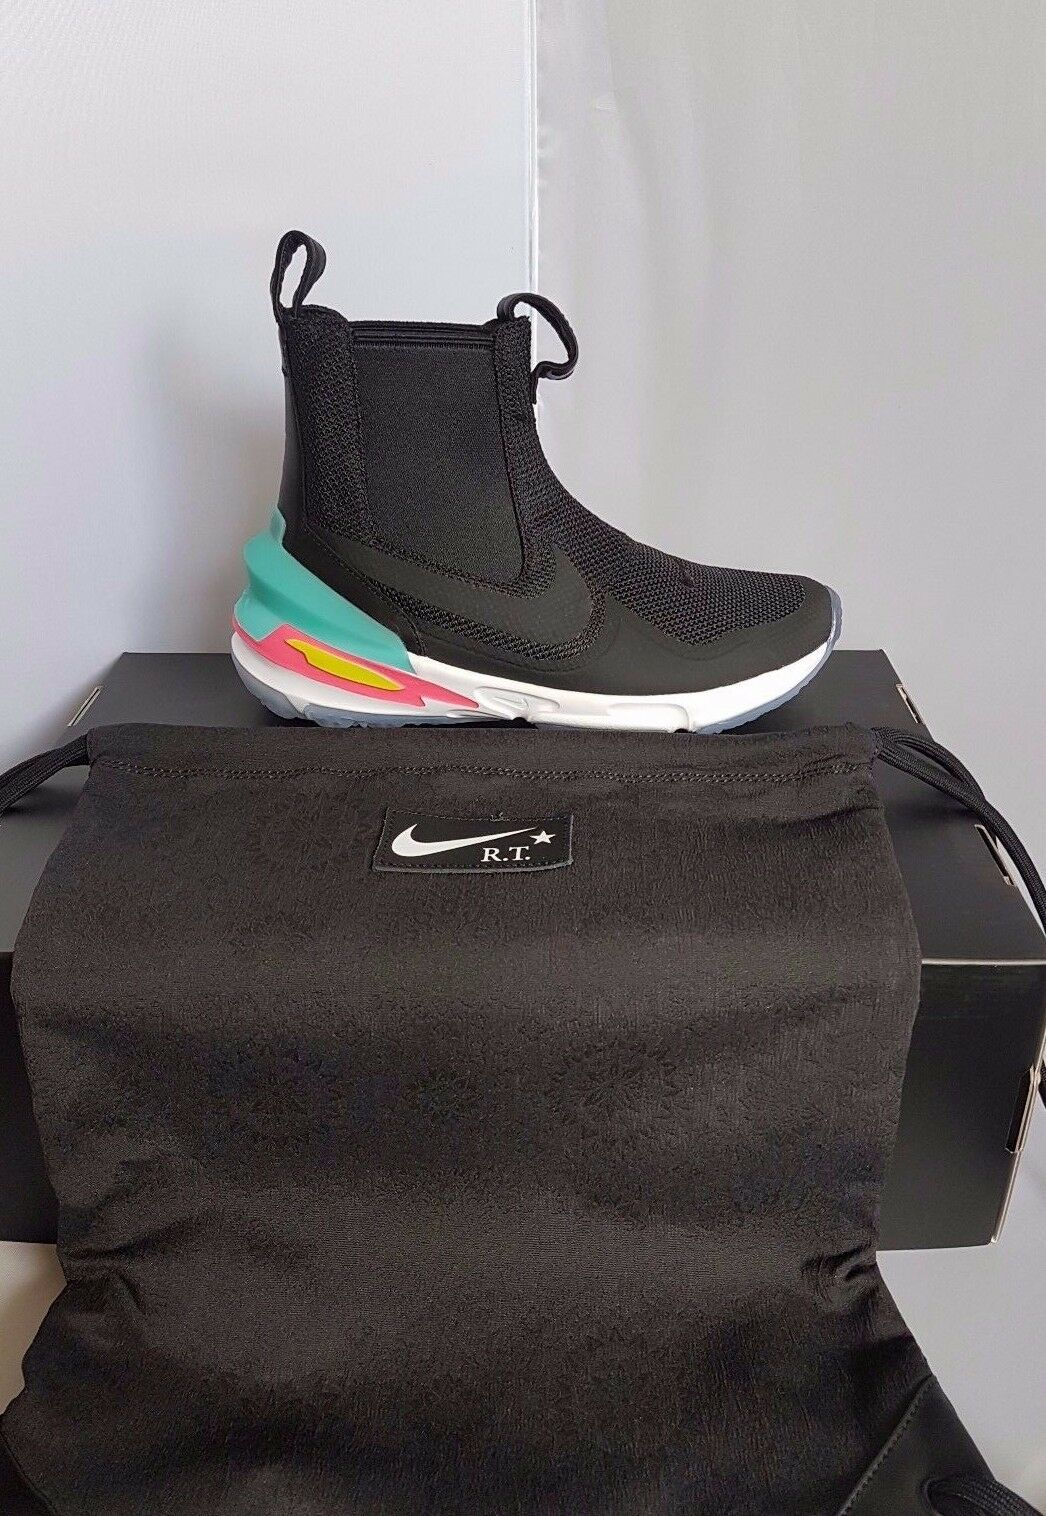 NIKE AIR ZOOM LEGEND GIVENCHY / RT RICCARDO TISCI GIVENCHY LEGEND  UK 4.5 US 5 c685f7